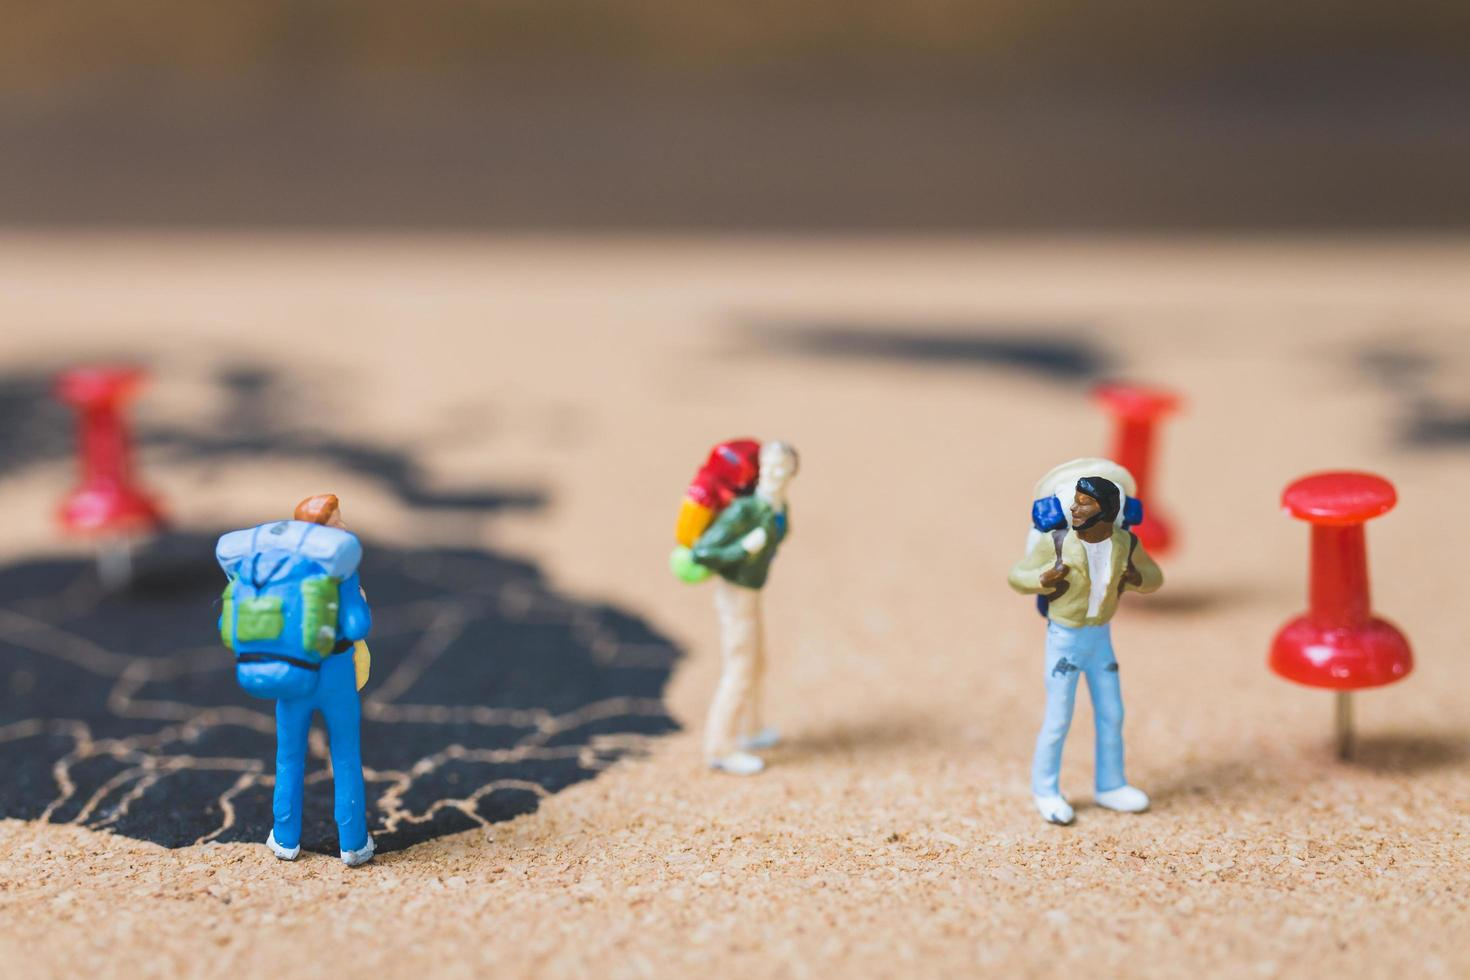 Miniature backpackers walking on a world map, tourism and travel concept photo